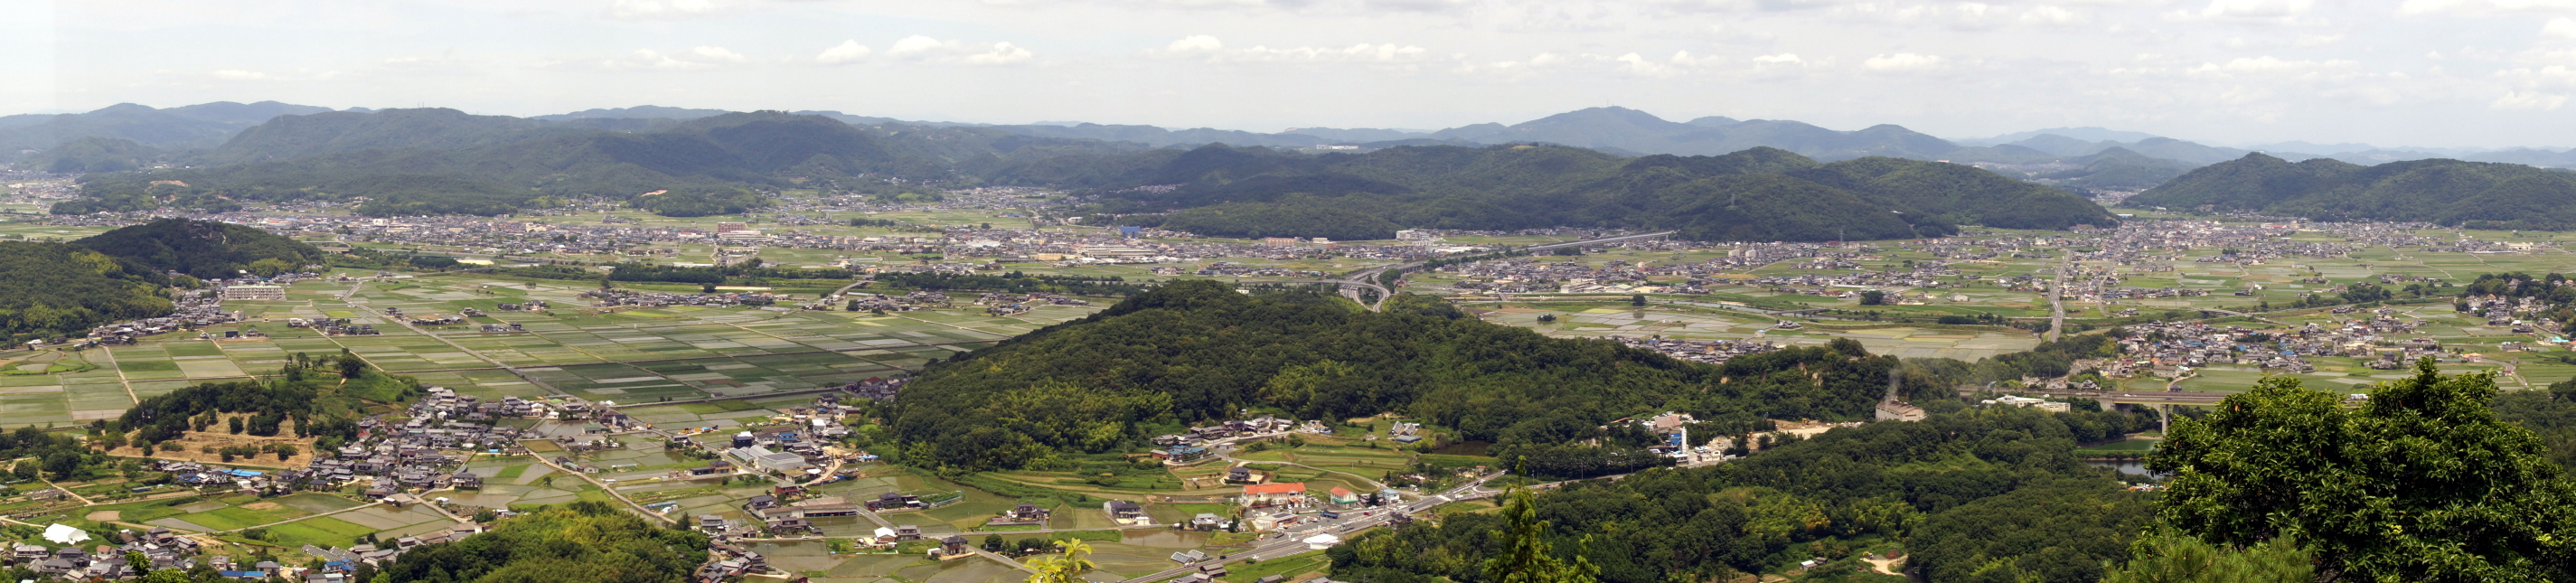 kibiji-area-okayama-district